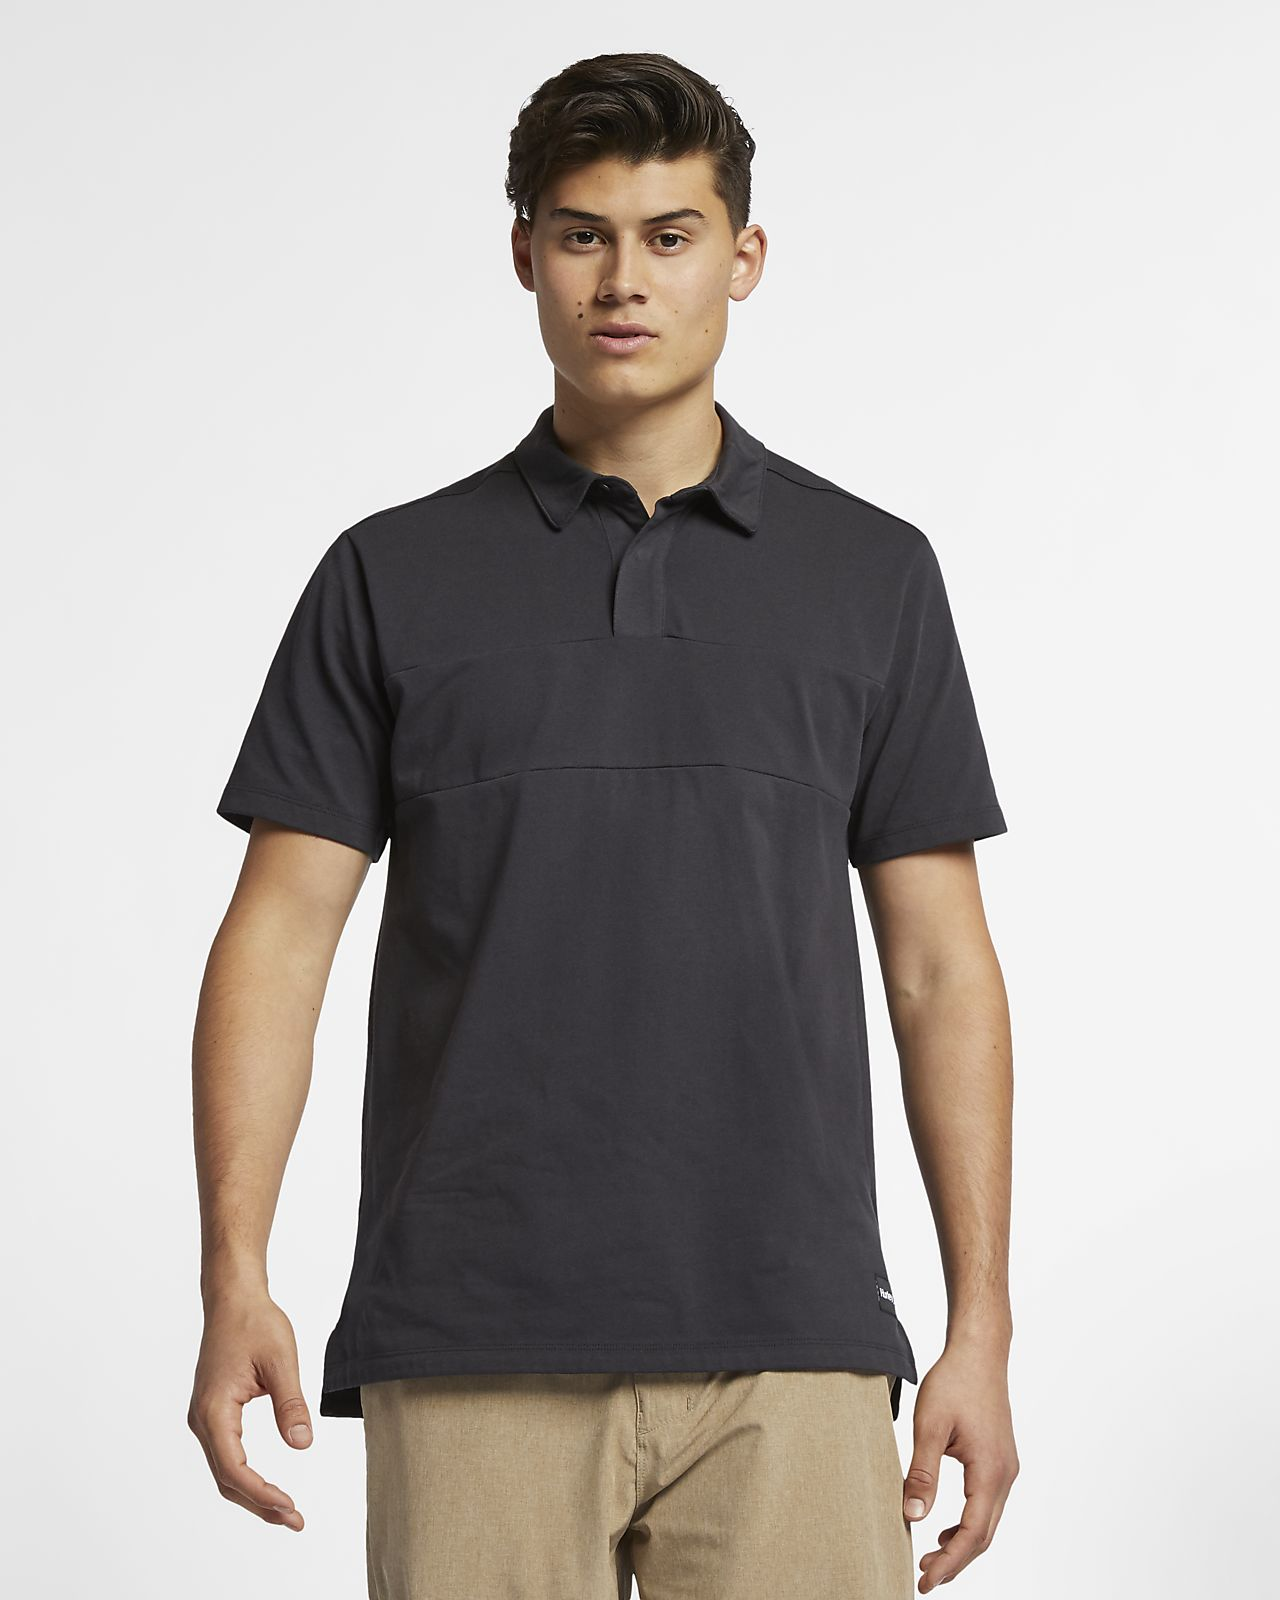 Hurley Dri-FIT Pioneer Men's Polo